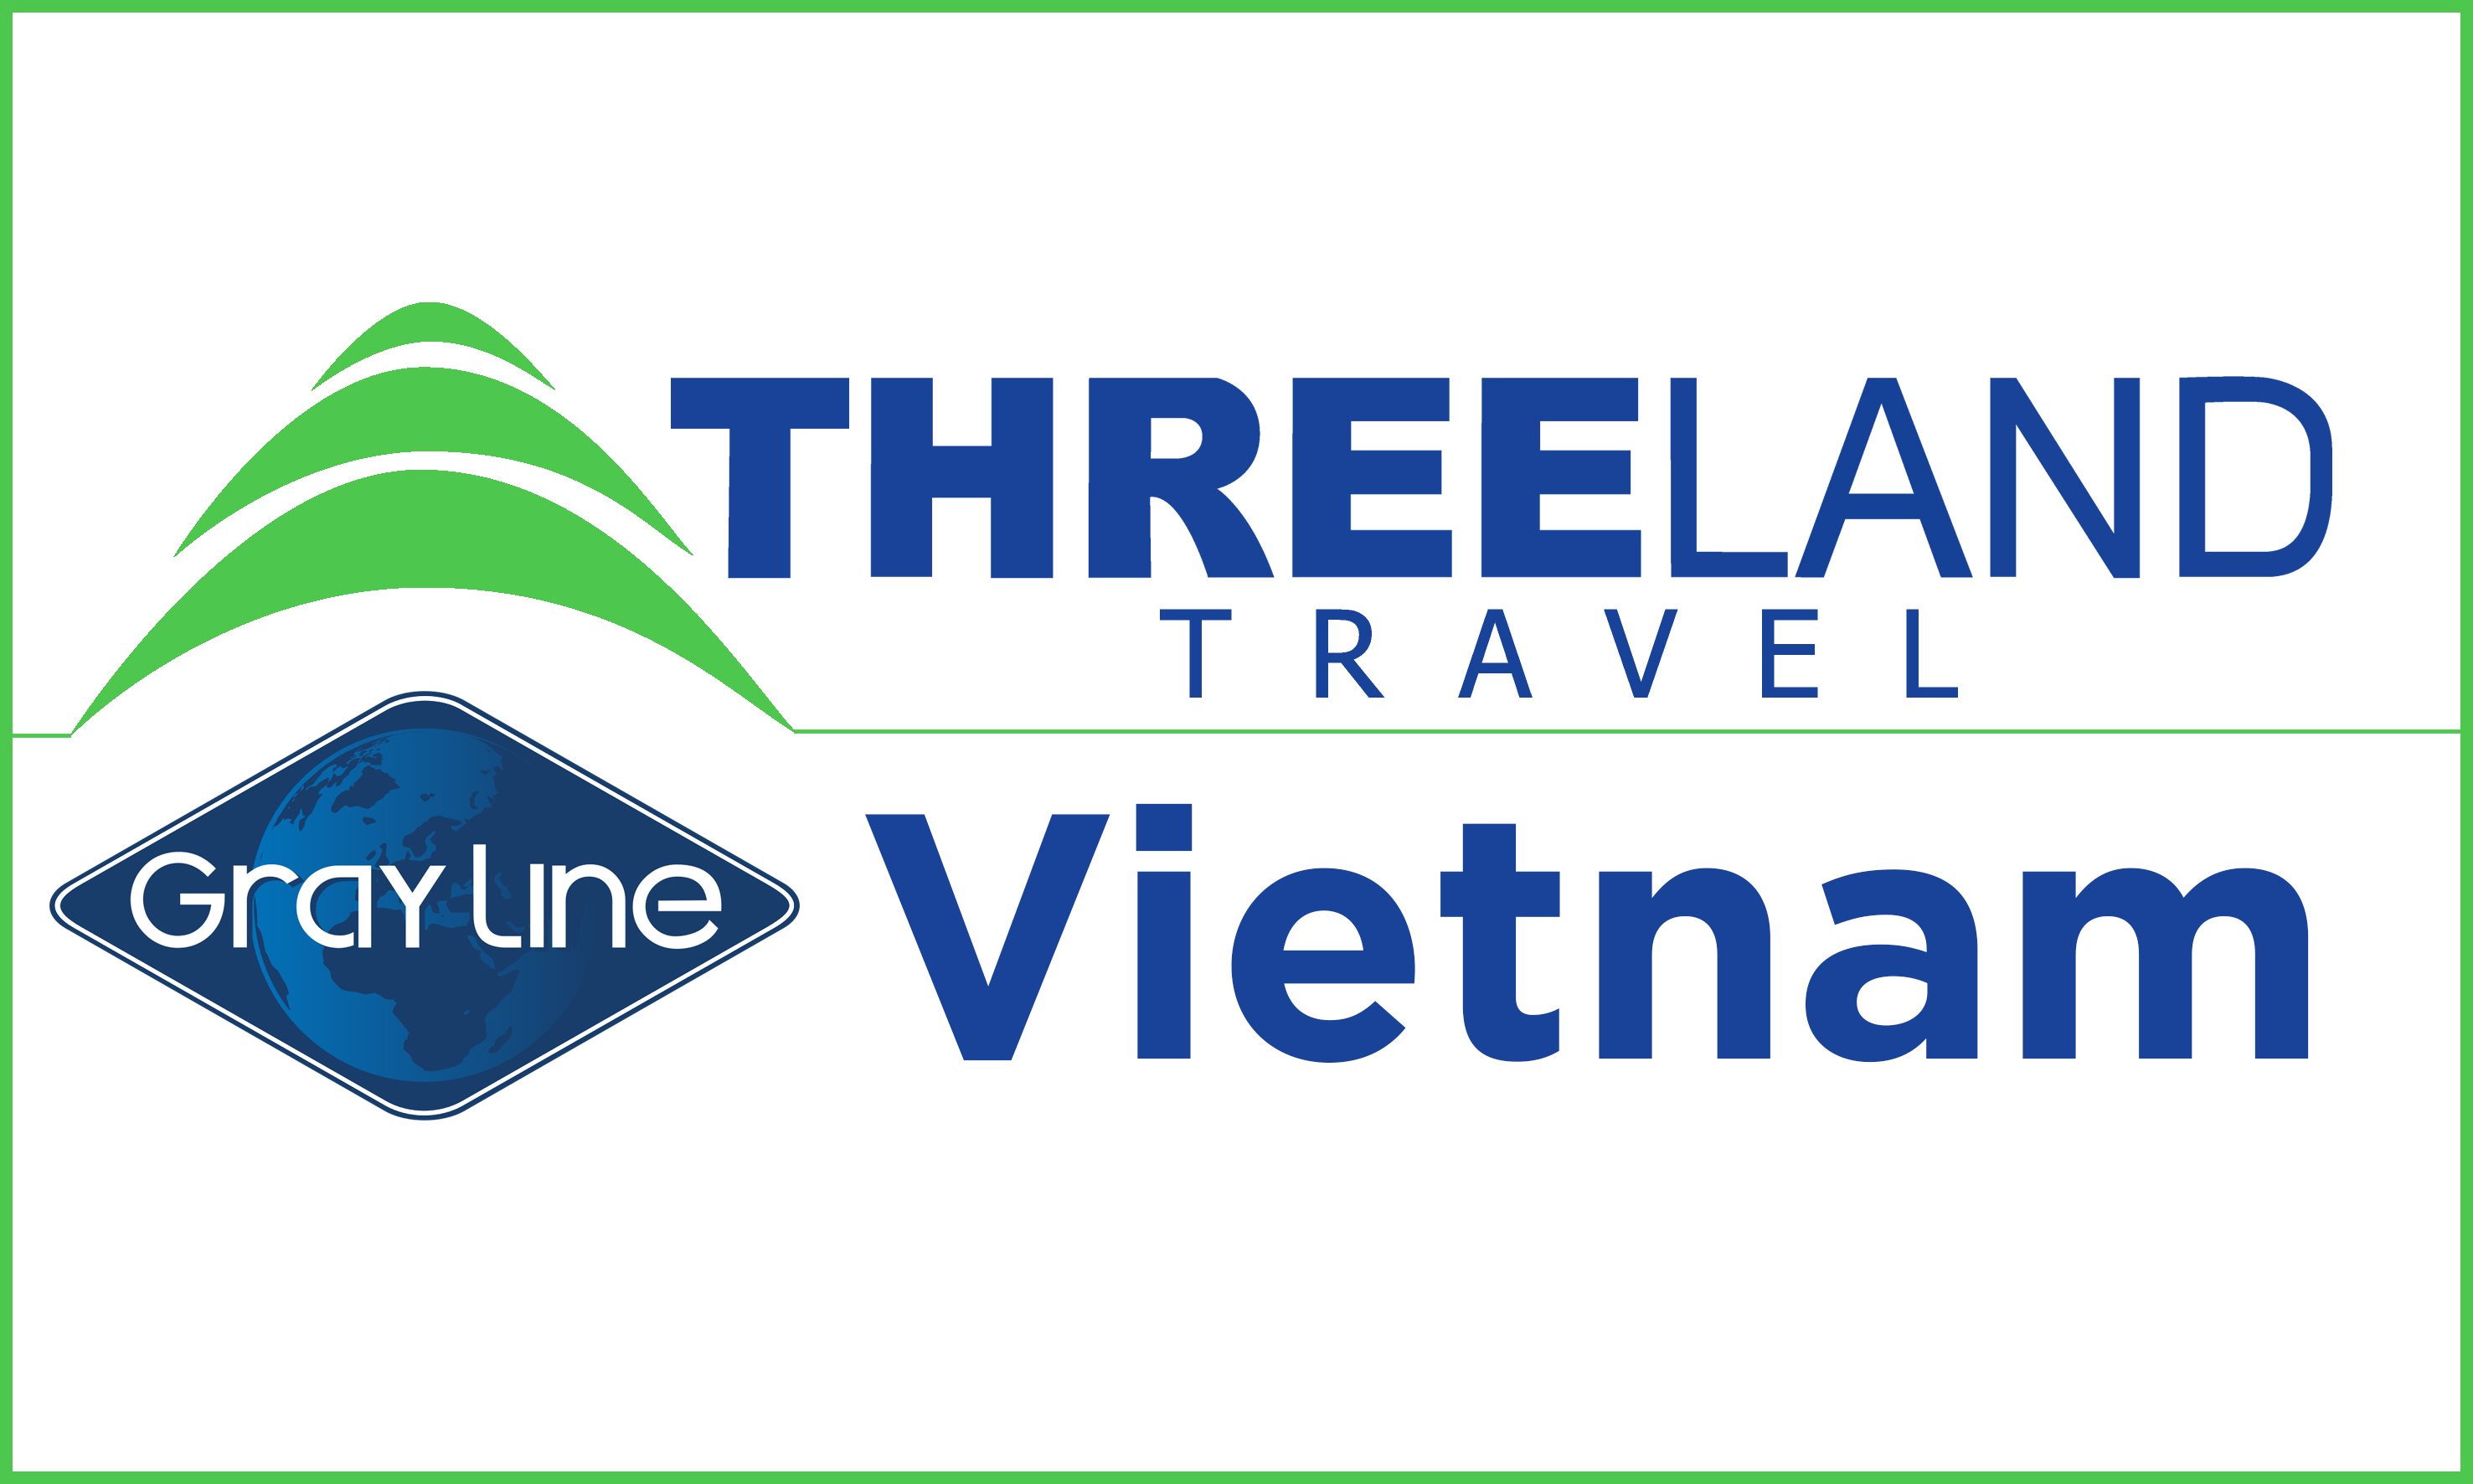 Threeland travel